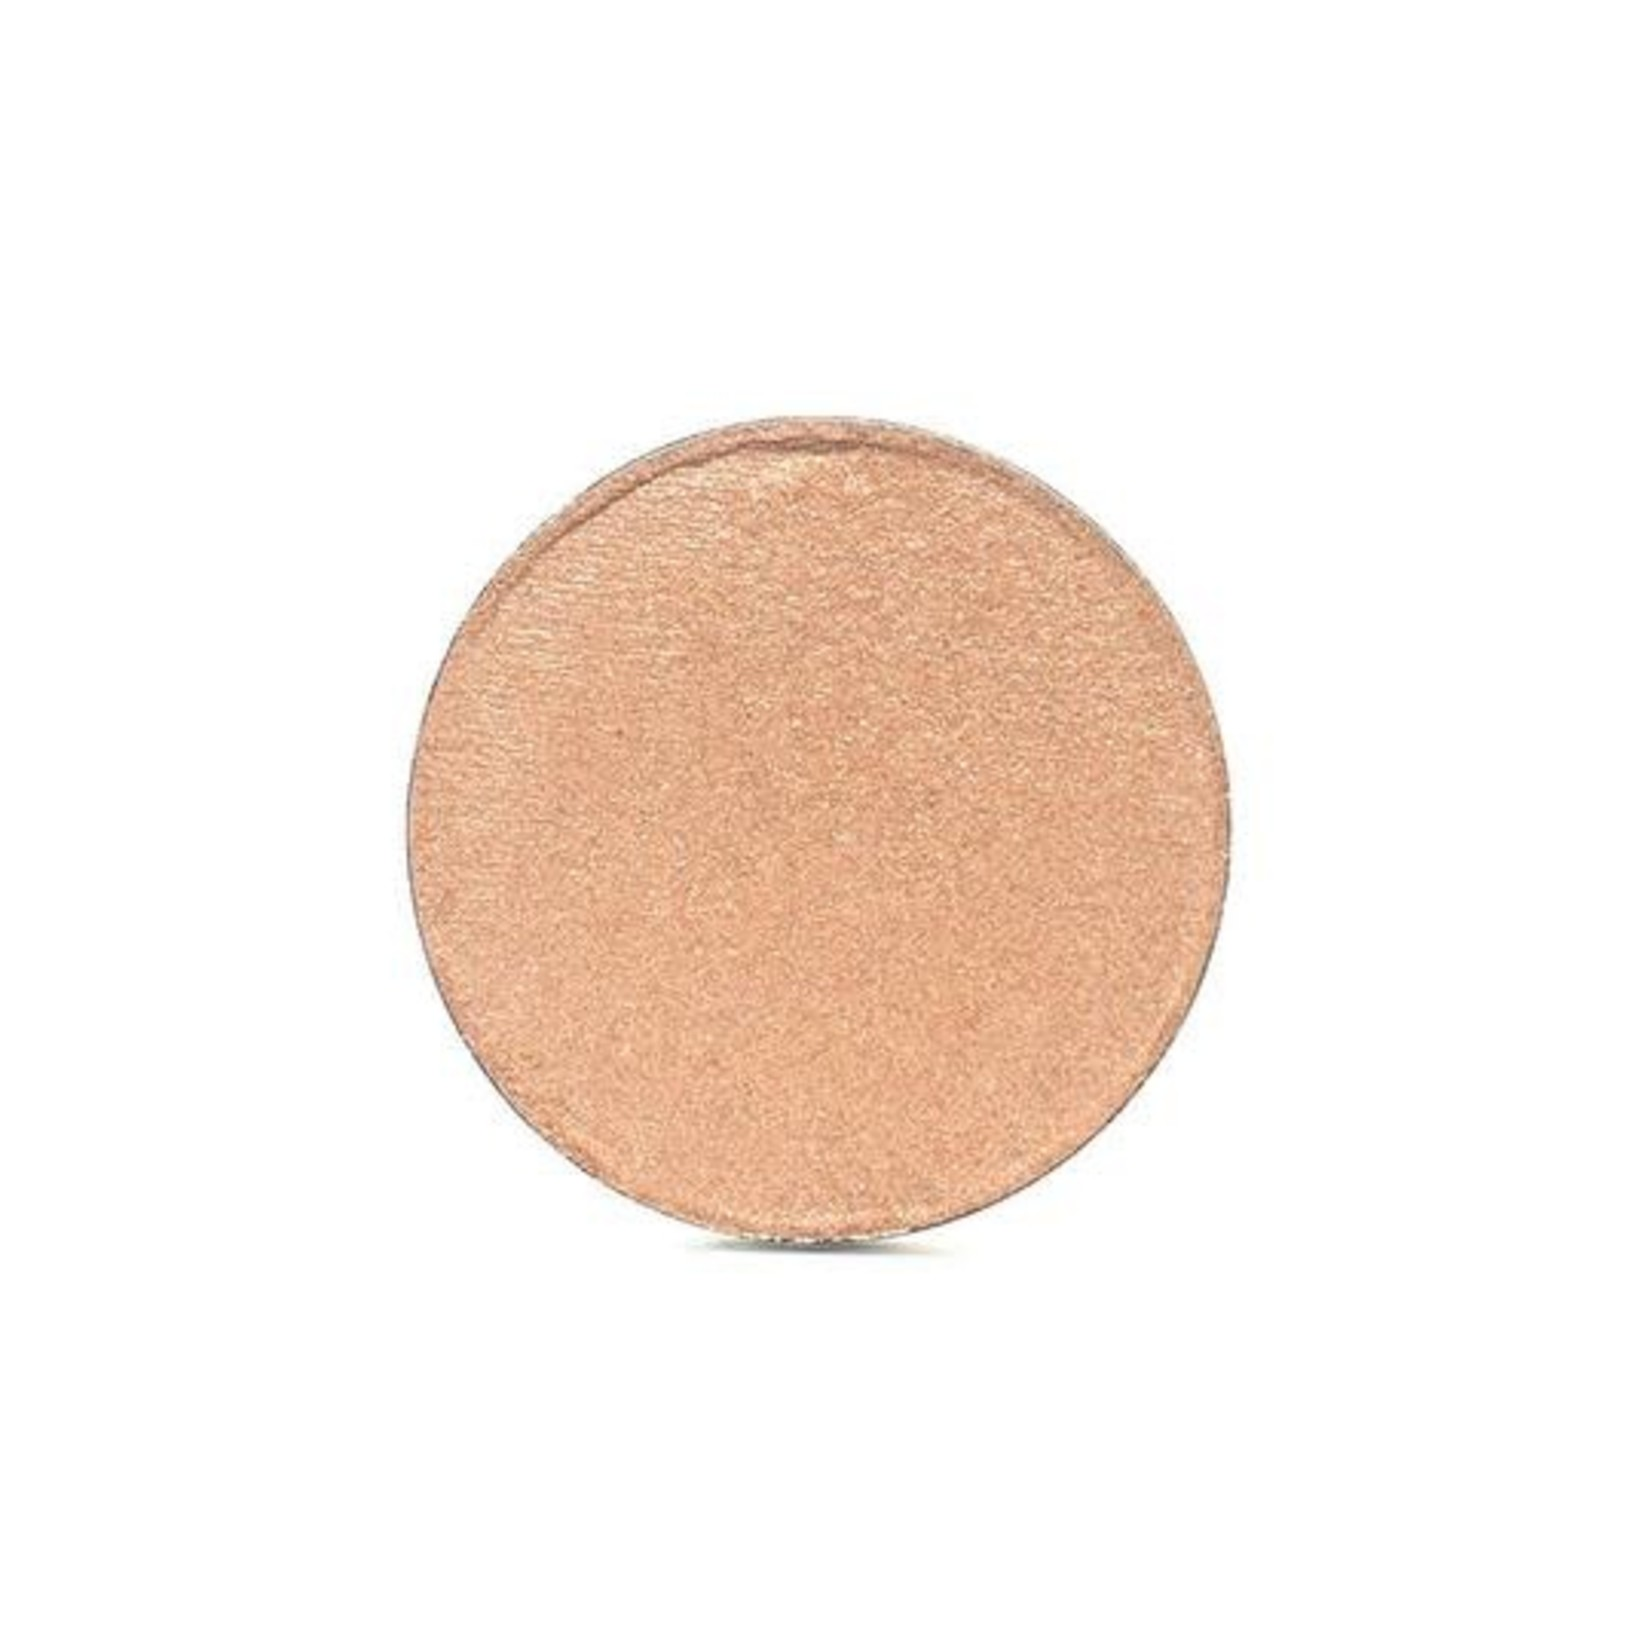 ELATE COSMETICS PRESSED EYECOLOUR - ETHEREAL